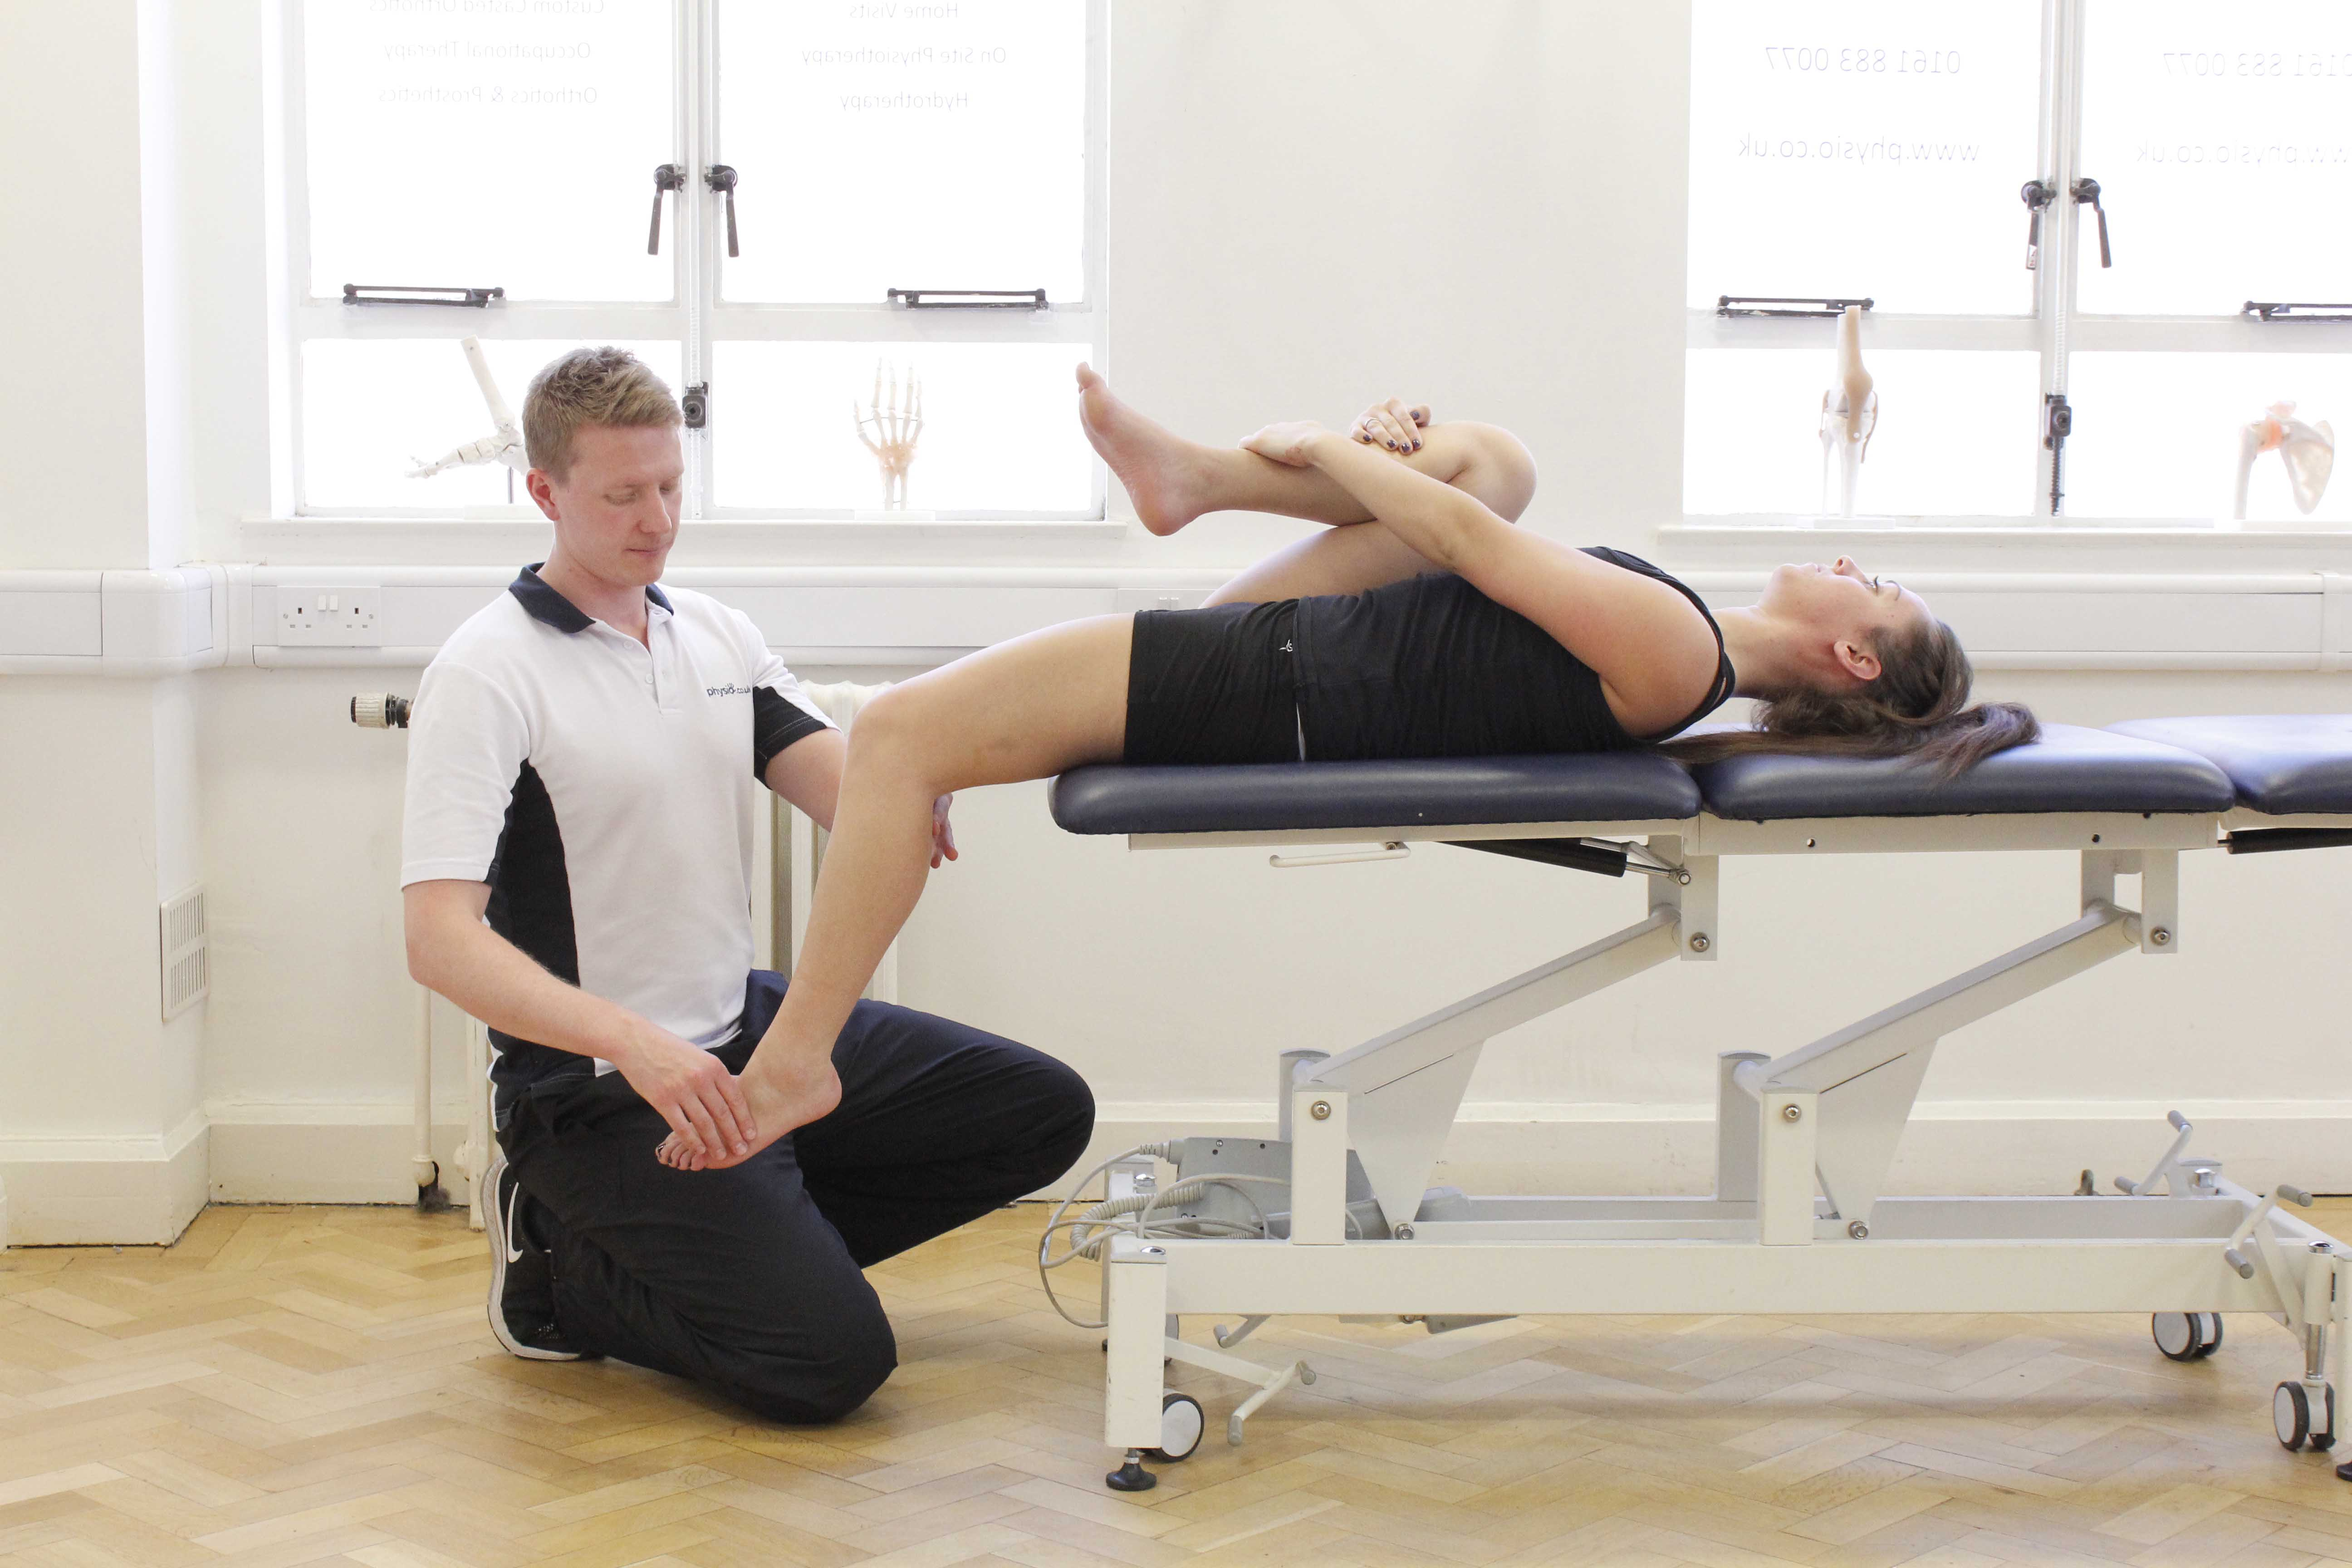 Biomechanical assessment led by specialist physiotherapist